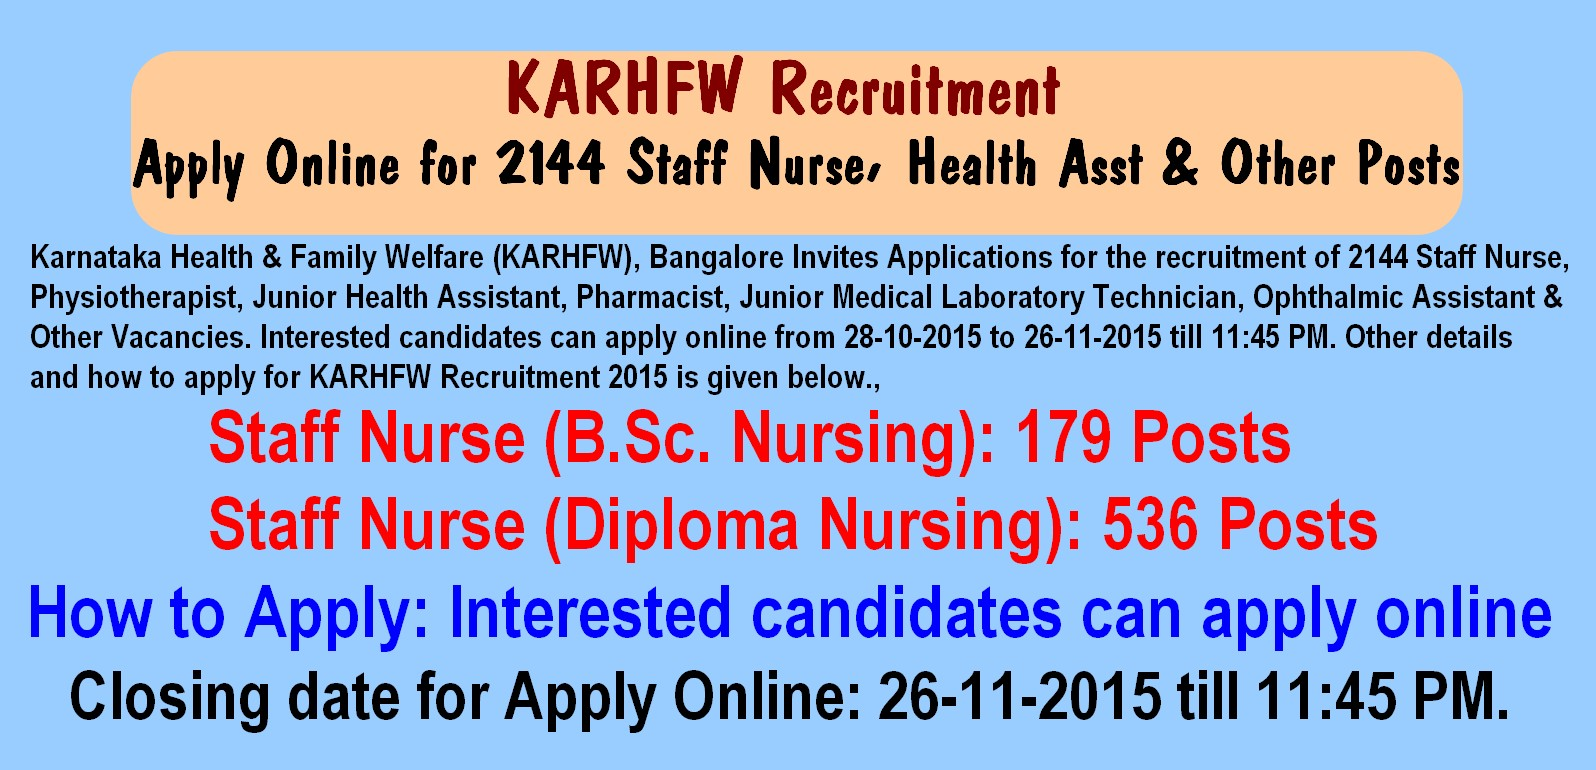 karhfw recruitment 2015 apply online for 2144 staff nurse health asst other posts